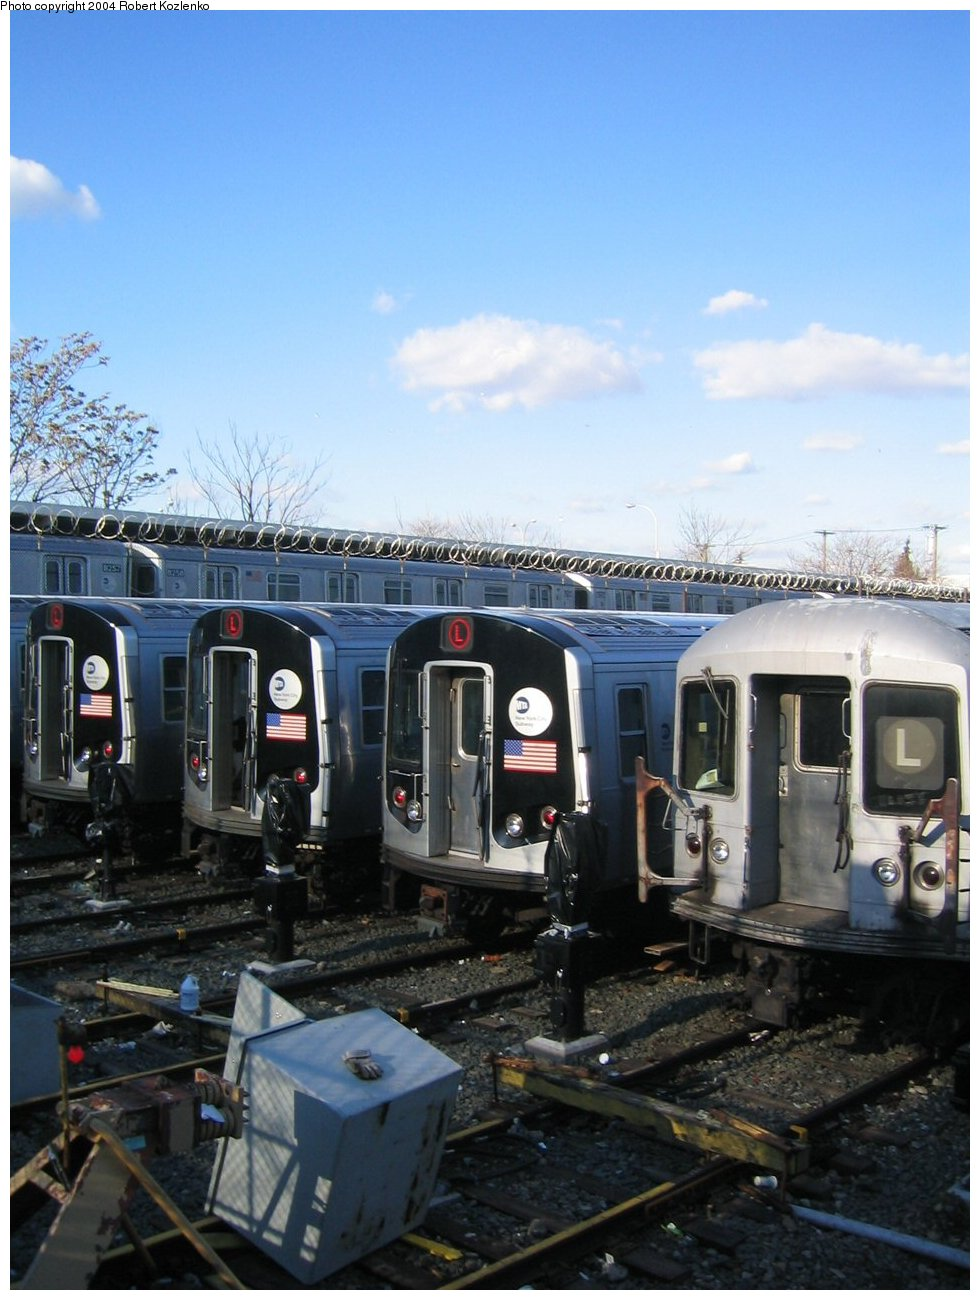 (215k, 980x1300)<br><b>Country:</b> United States<br><b>City:</b> New York<br><b>System:</b> New York City Transit<br><b>Location:</b> Rockaway Parkway (Canarsie) Yard<br><b>Car:</b> R-143 (Kawasaki, 2001-2002)  <br><b>Photo by:</b> Robert Kozlenko<br><b>Date:</b> 11/26/2004<br><b>Viewed (this week/total):</b> 1 / 4827